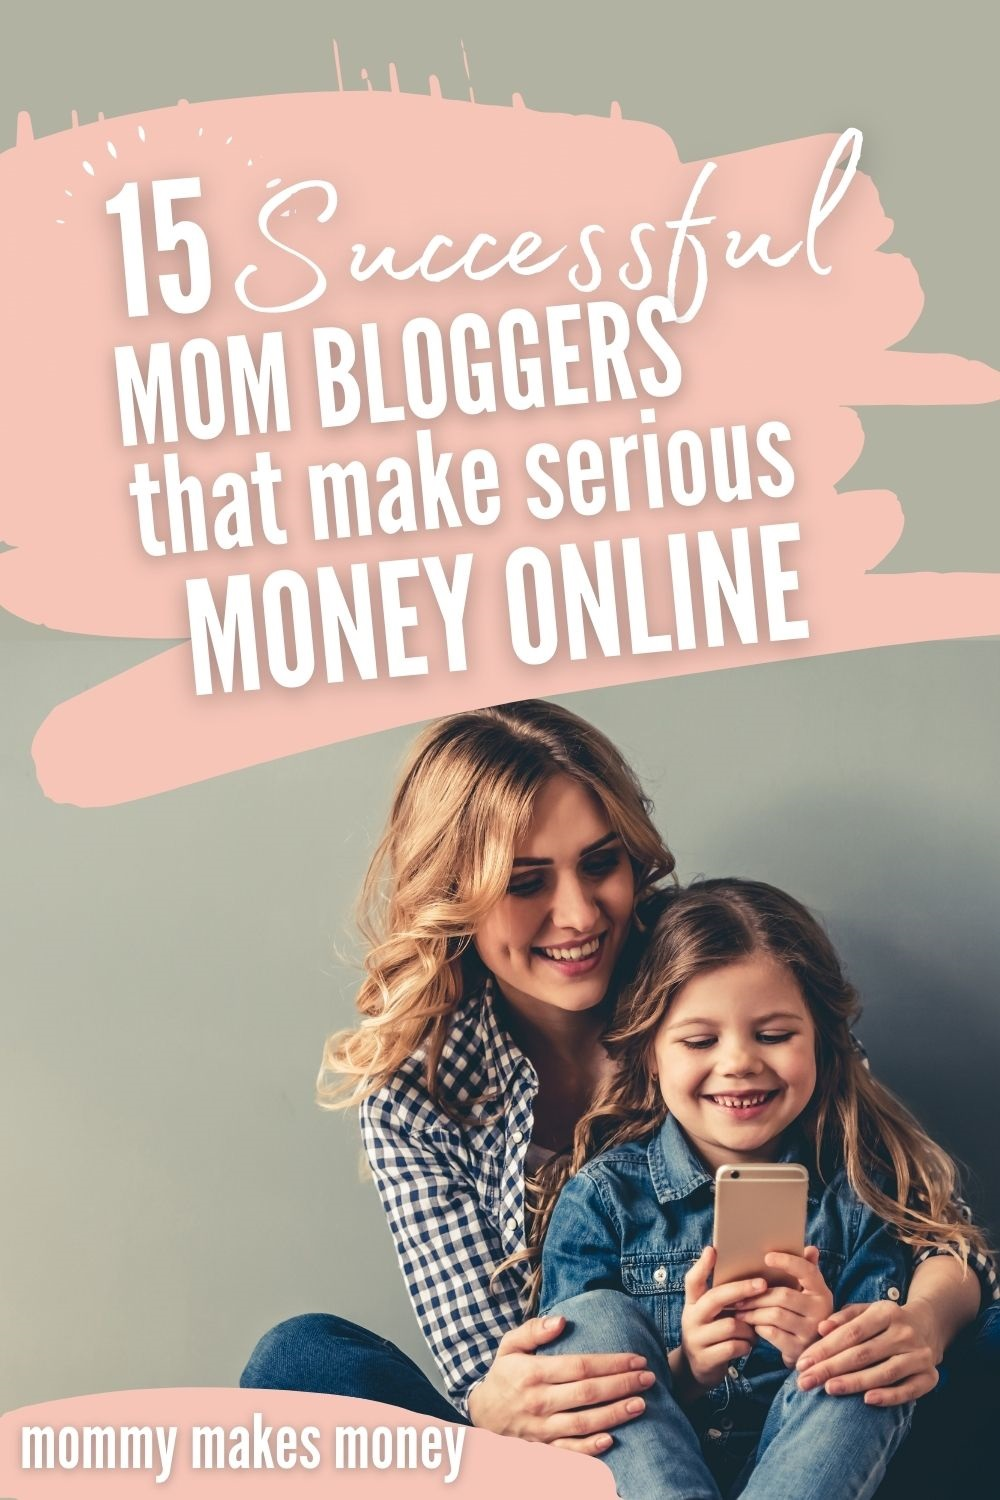 Successful mom blogs that make money. Find out which Mom Bloggers to Follow that earn extra money per month! Looking for mom blogs to follow and learn from the best mom bloggers? I have put together a list of top 15 mom bloggers to follow who make over $5000 a month blogging. They will inspire you with mommy blog ideas that make money and expert tips to help you make money blogging fast. If you are a mom that wants to write and start a blog? Learn the popular blogs and mom blogs that make money. Work from home with a mom blog and make money doing it.